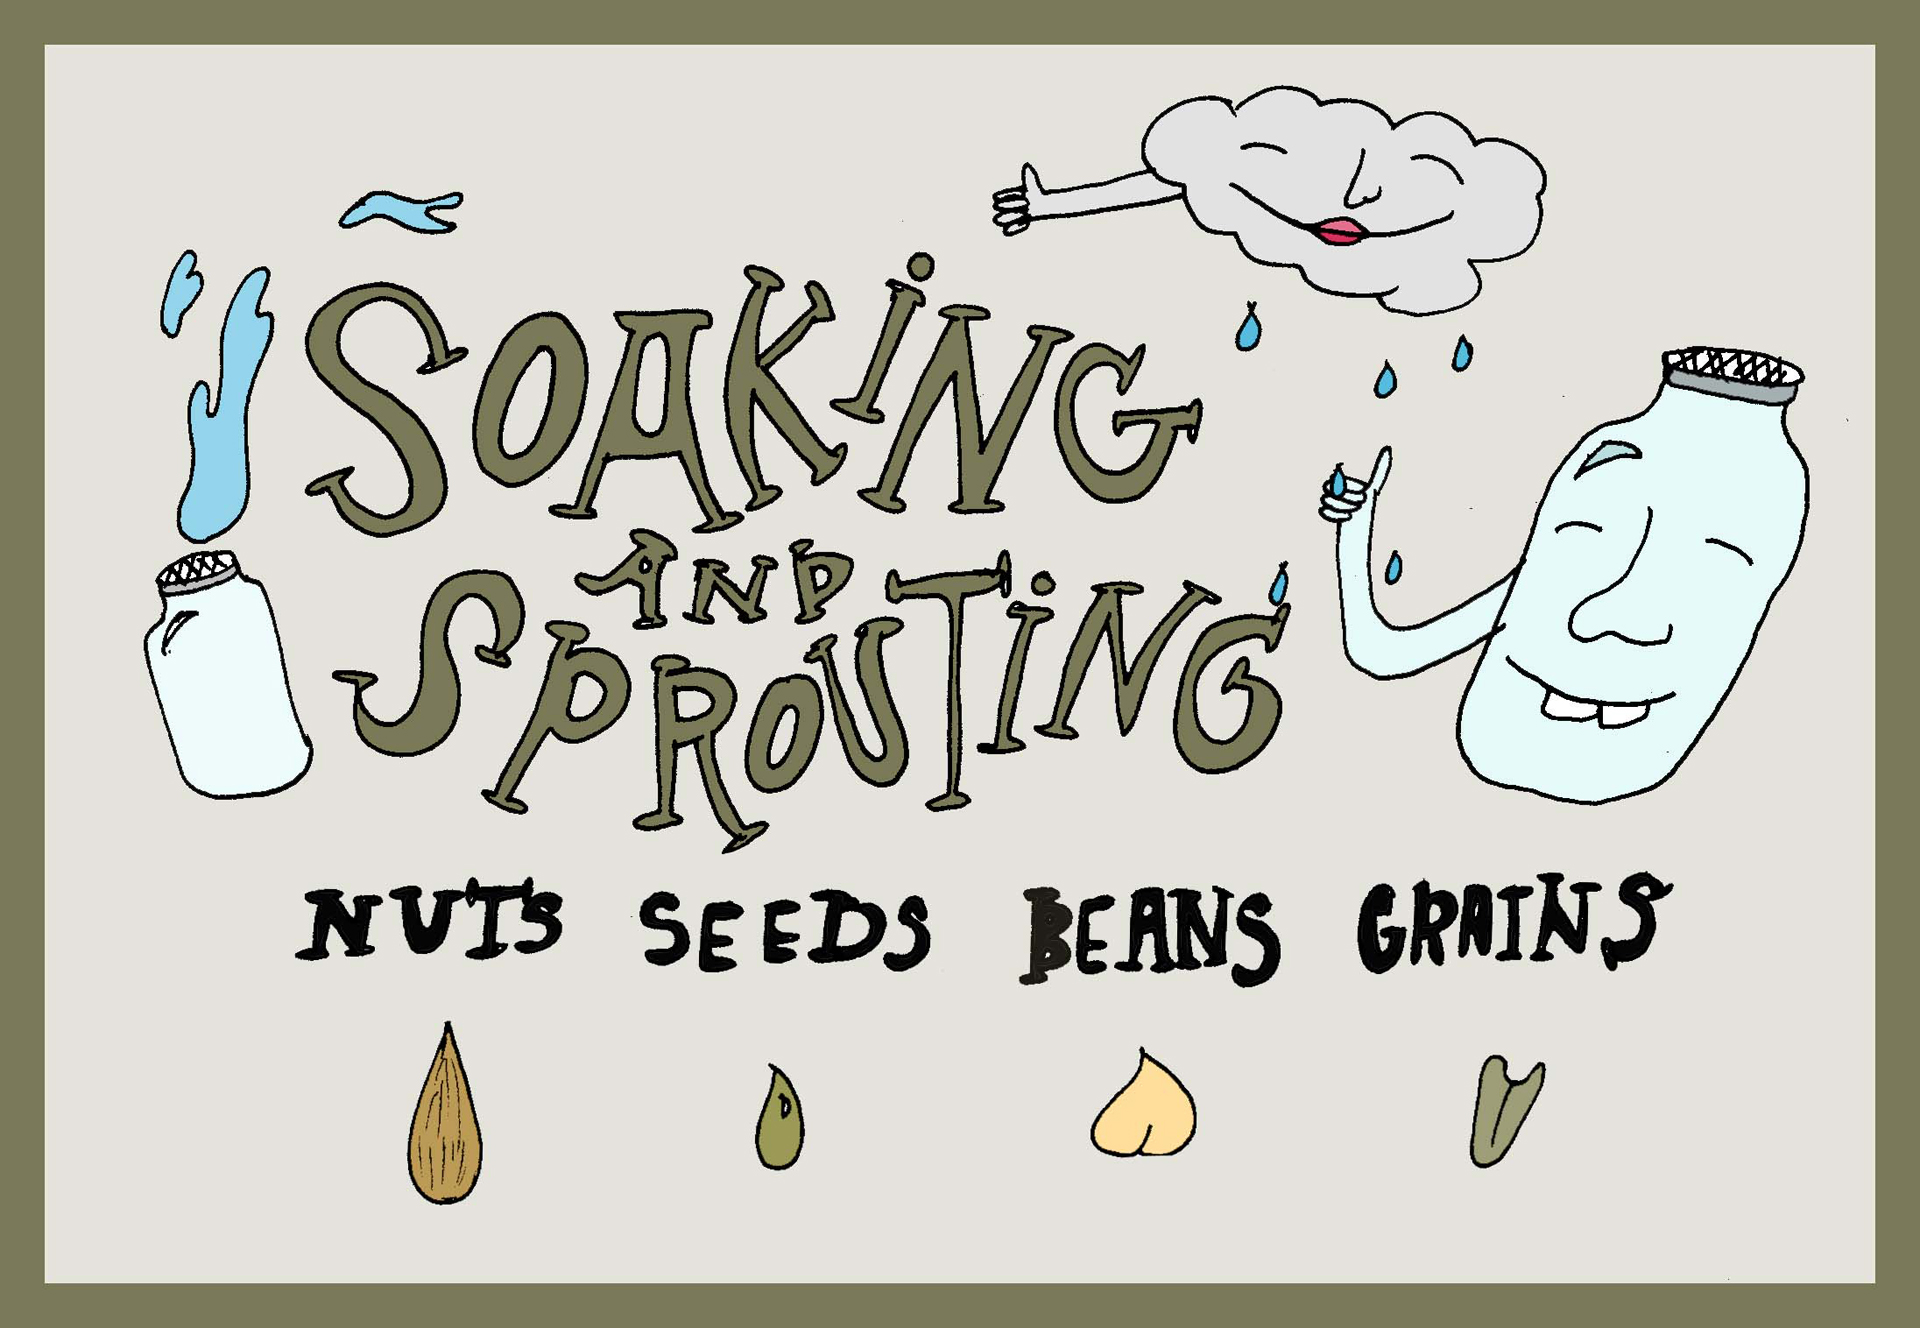 Soaking and Sprouting: Nuts, Seeds, Beans, Grains